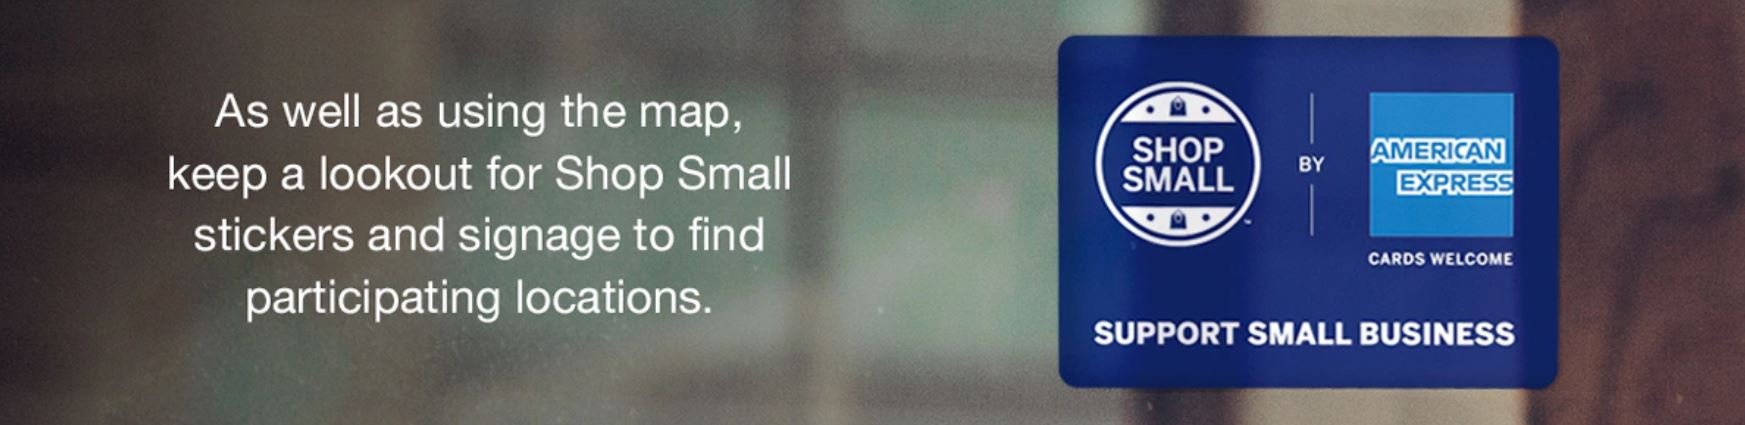 Amex Shop Small promotion (Image: Amex)